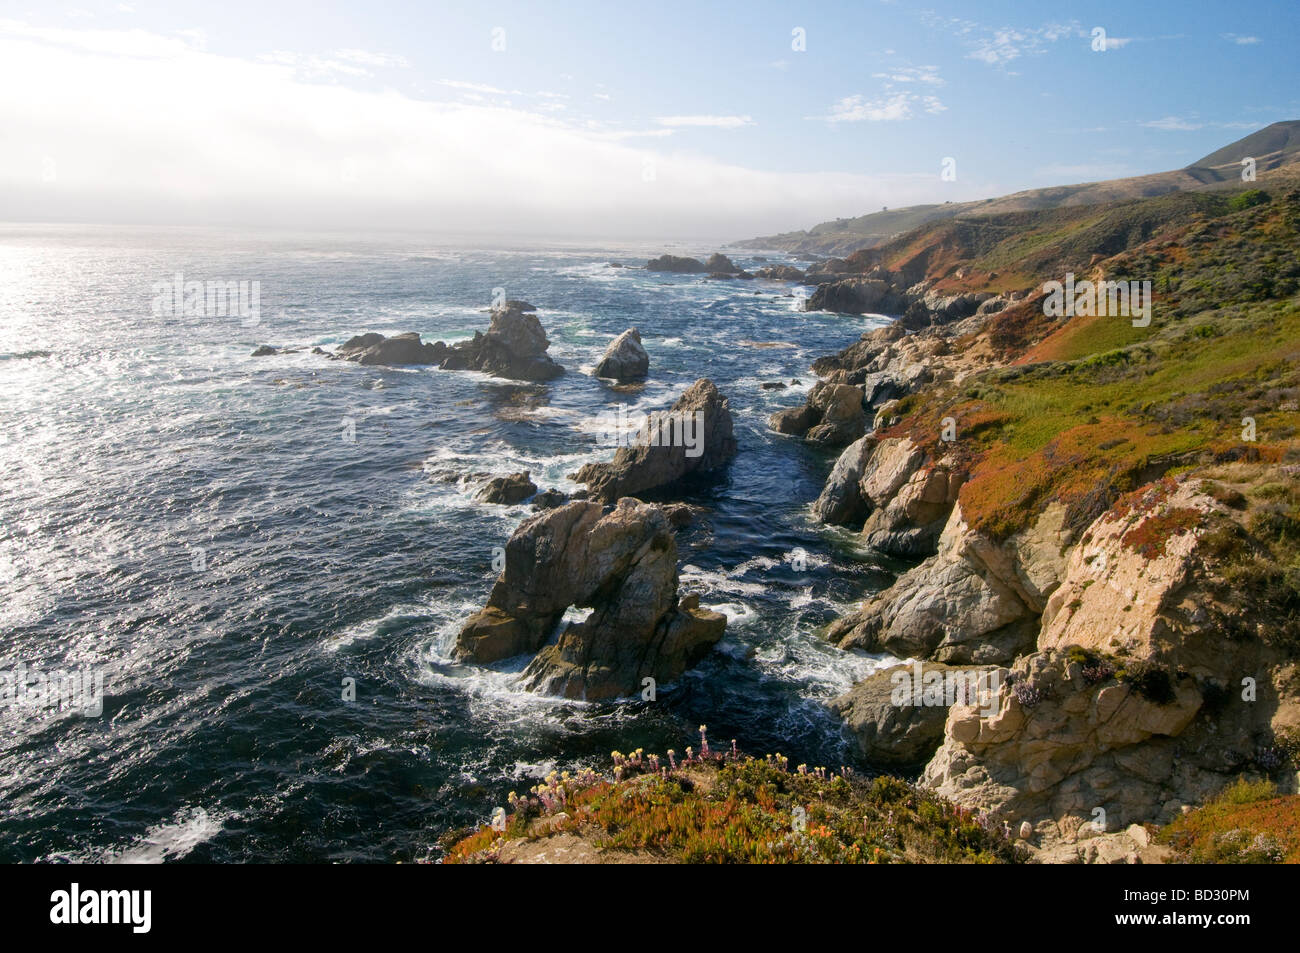 rocky cliffs on the coast of Big Sur California - Stock Image